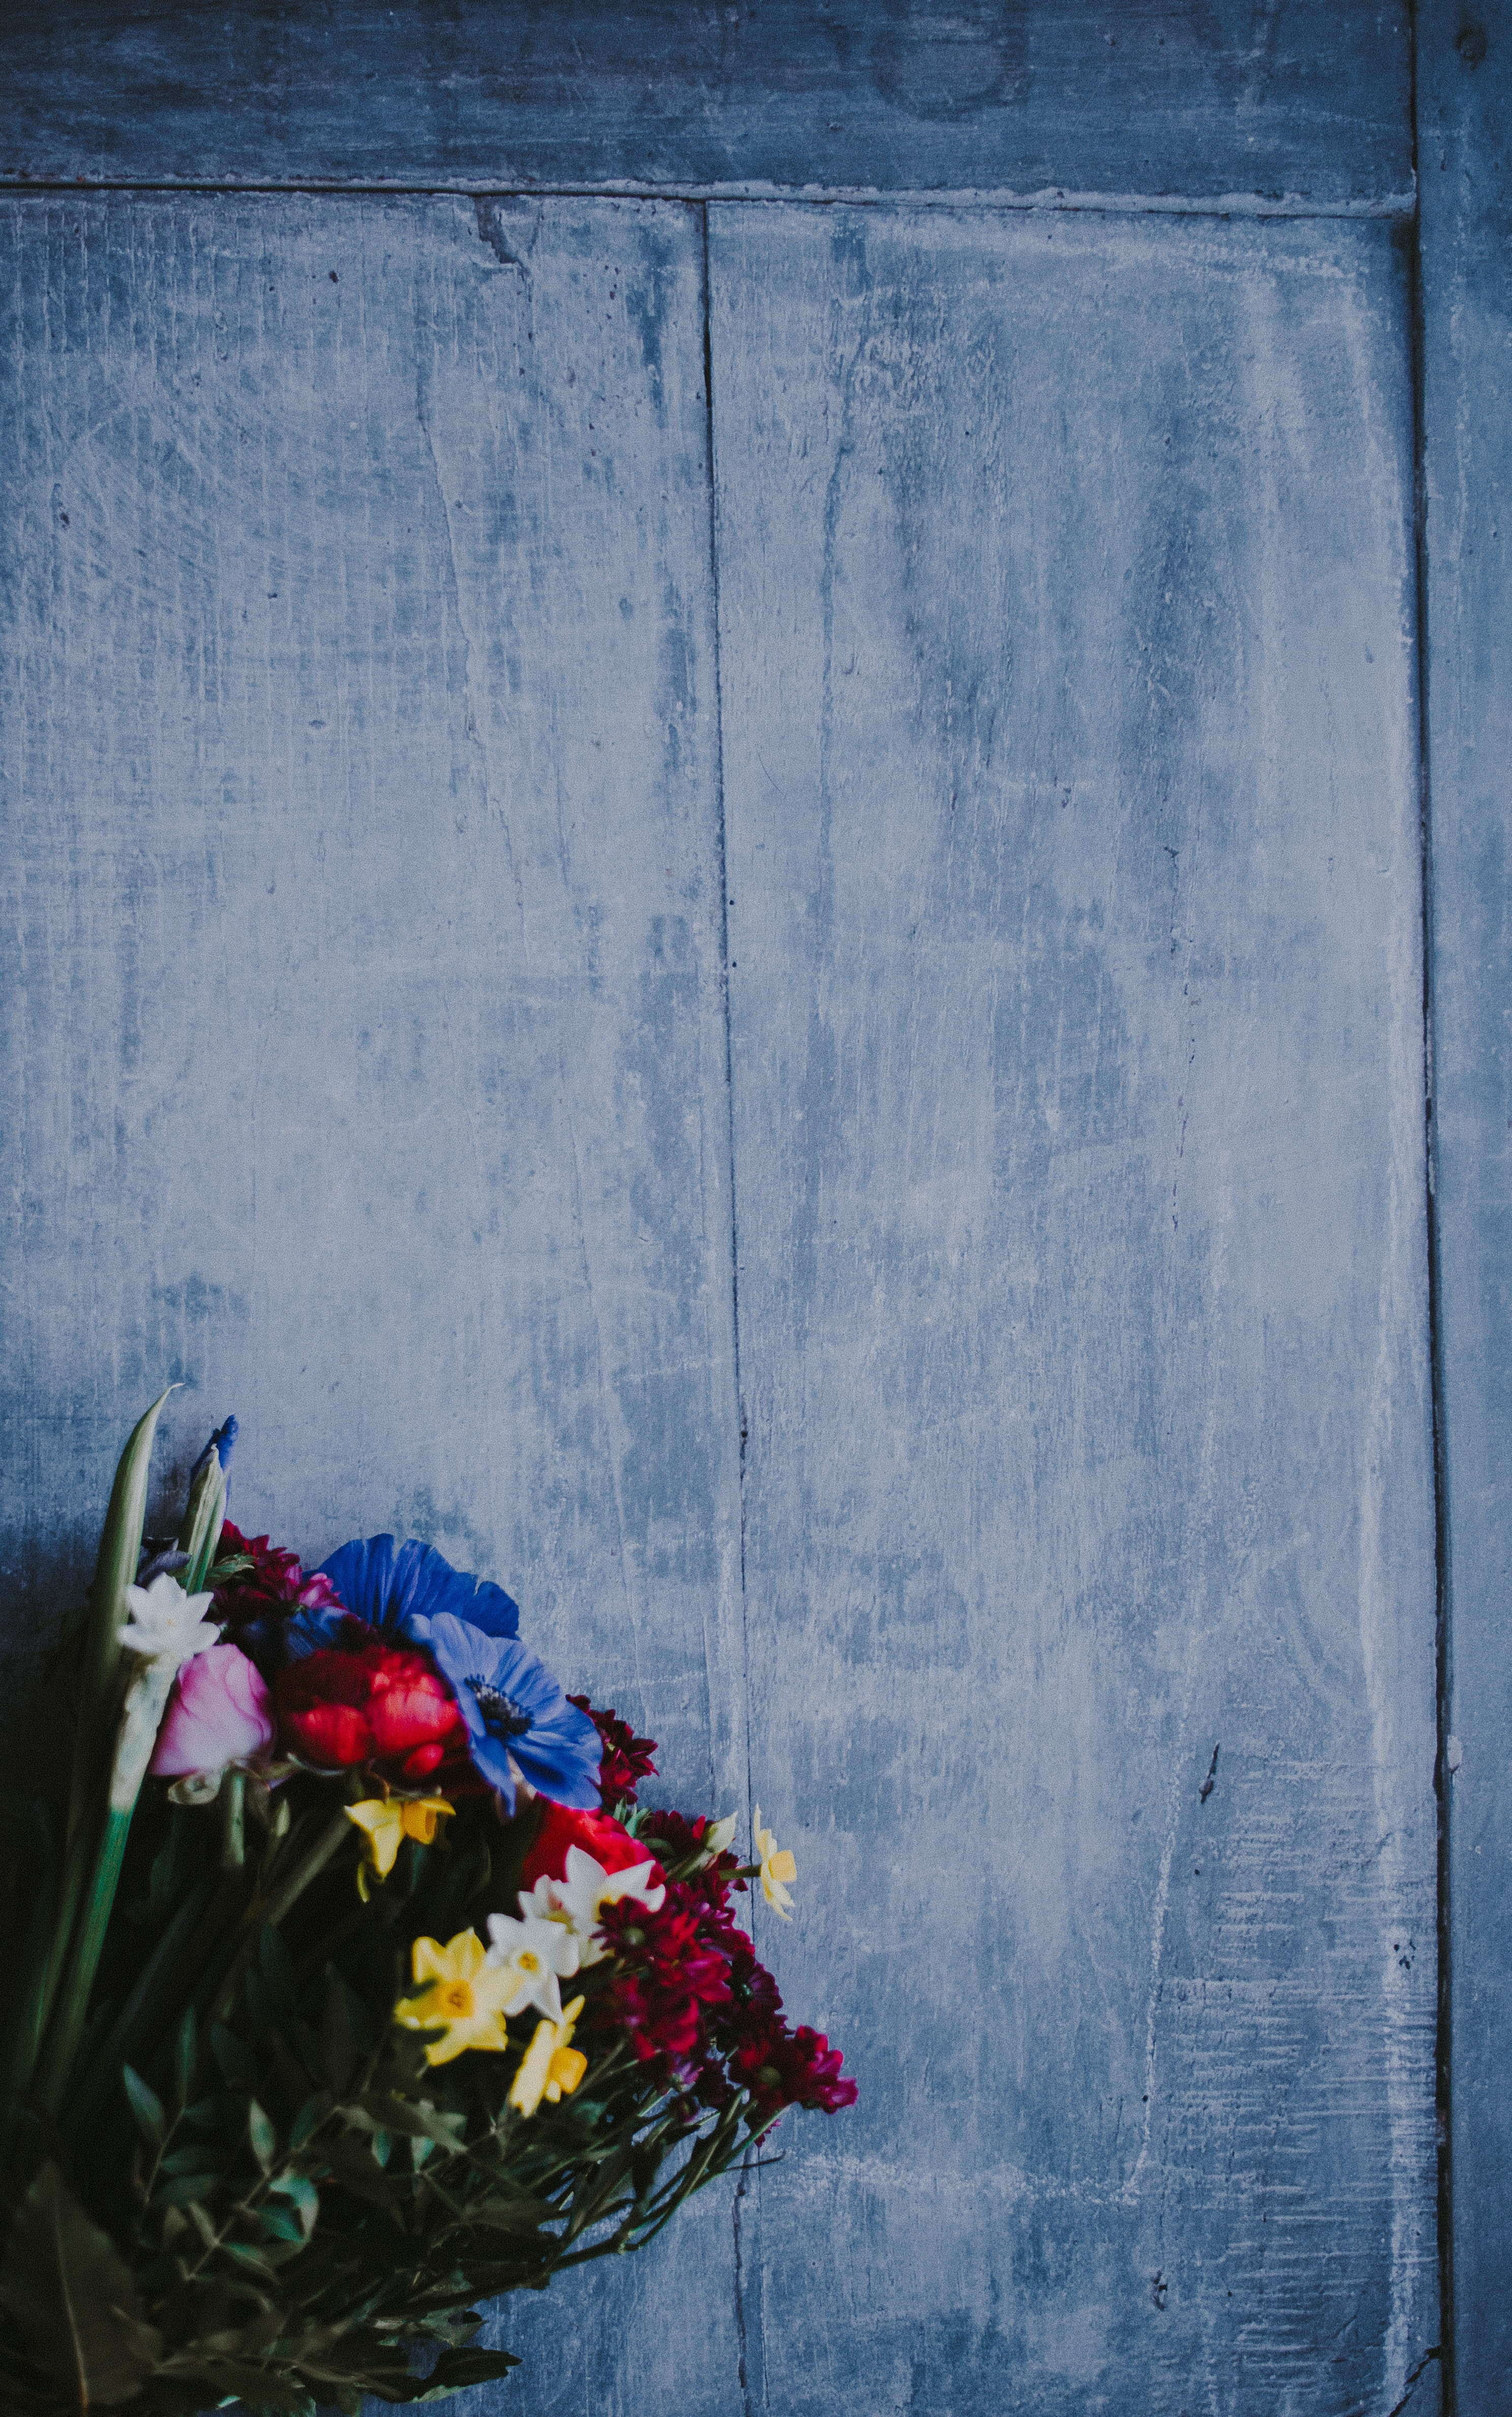 photo of blue, red, and yellow petaled flowers on top of gray board